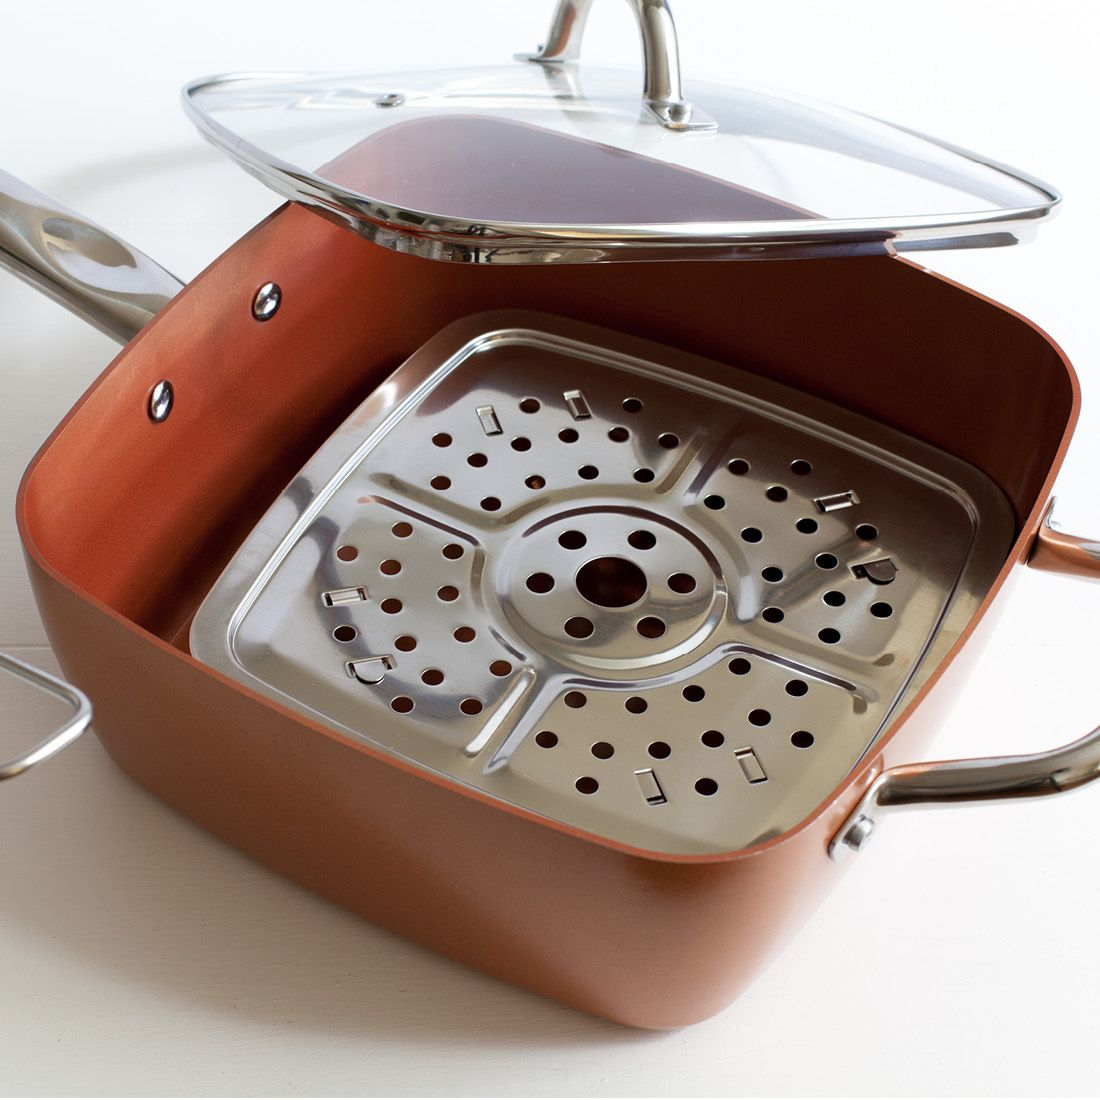 Copper Chef 6 In 1 Non Stick Pan 5 Piece Set As Seen On